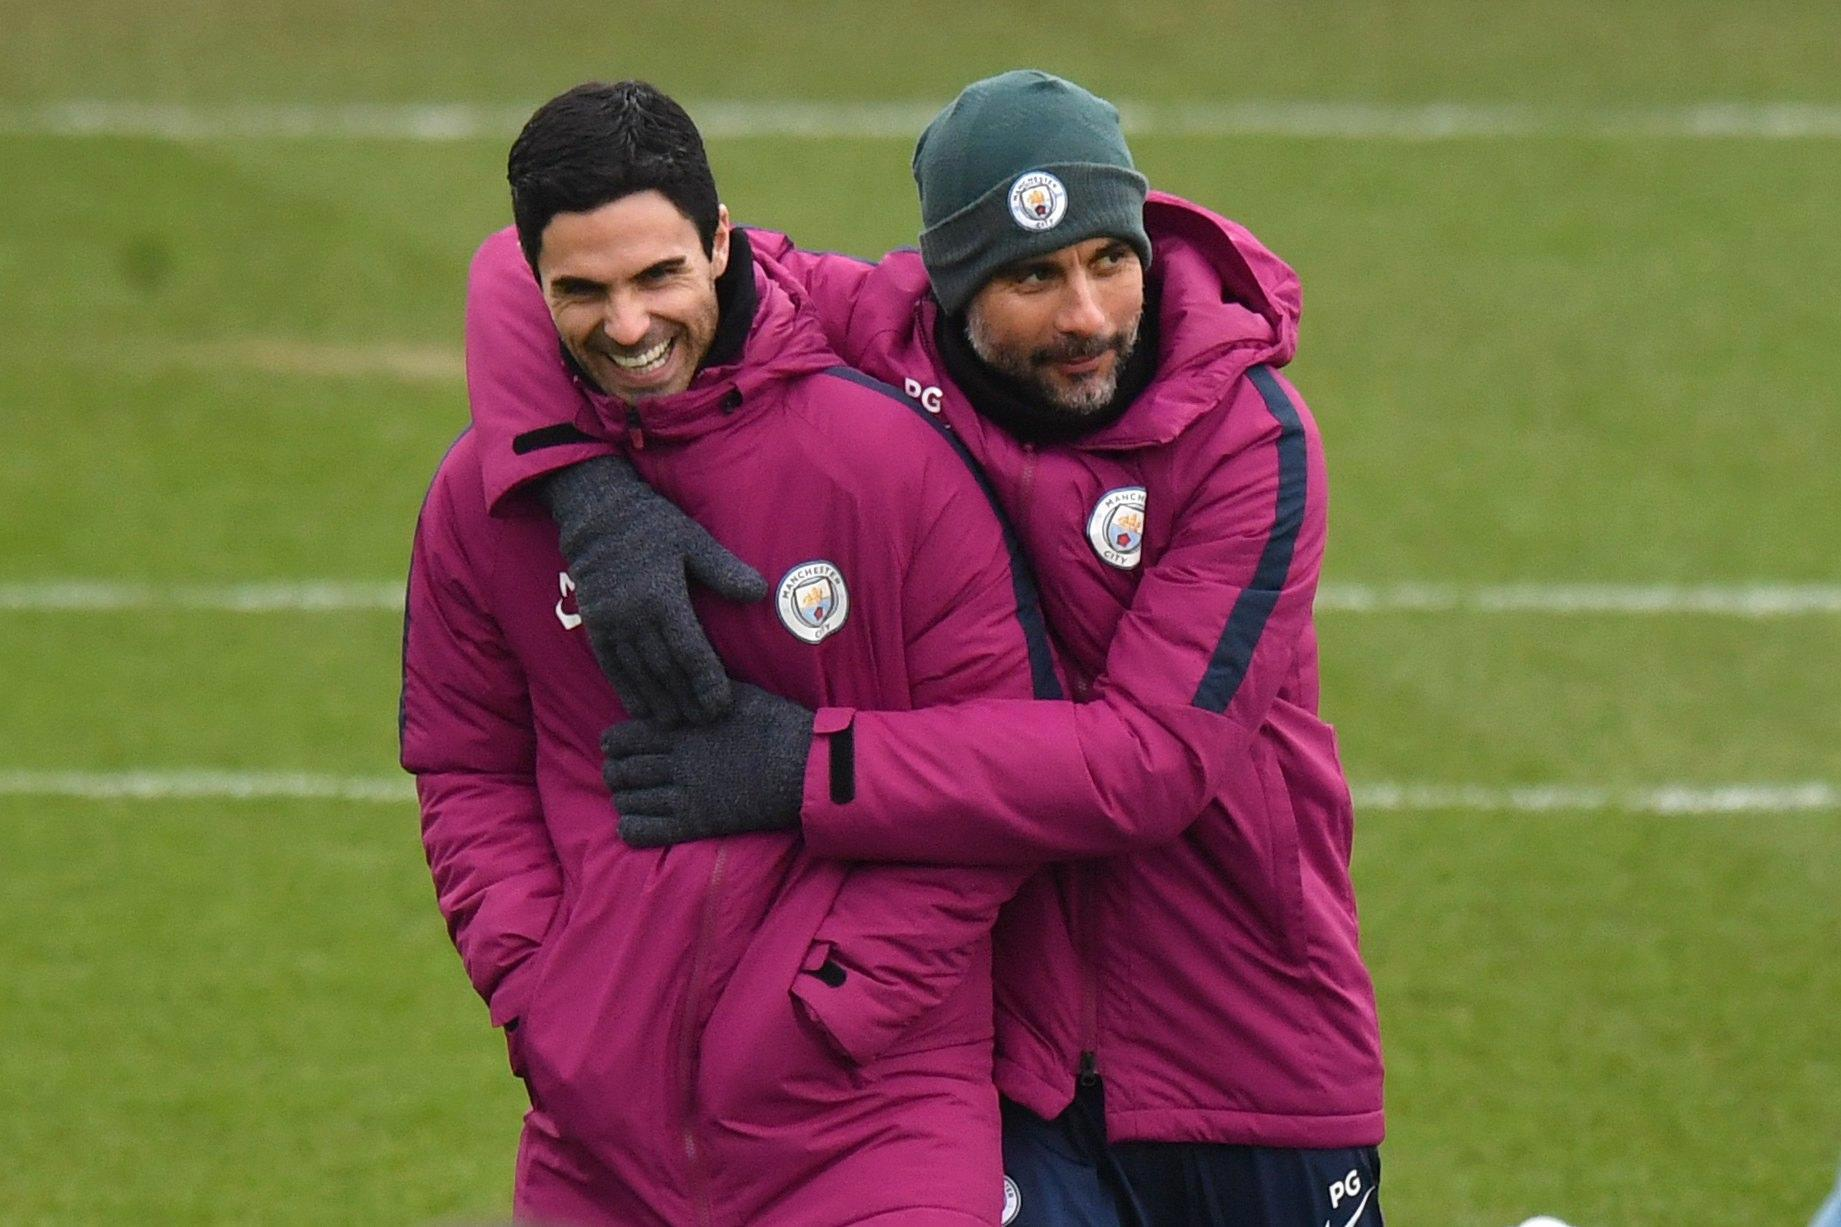 Pep Guardiola opens up on Mikel Arteta and Liverpool title challenge